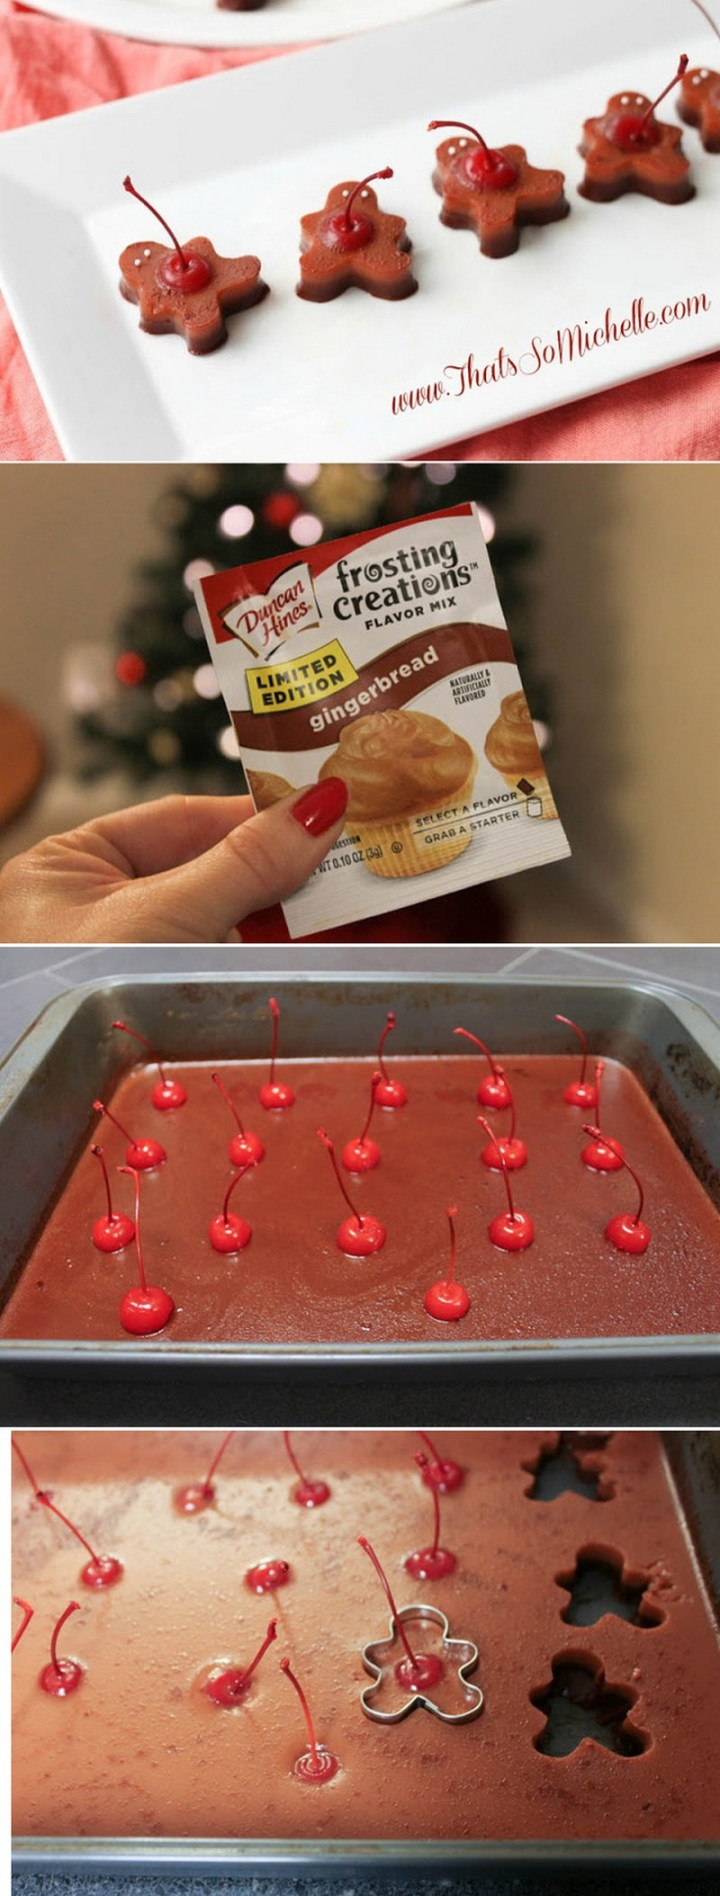 Use gingerbread frosting flavoring to make these adorable gingerbread man Jell-O shots